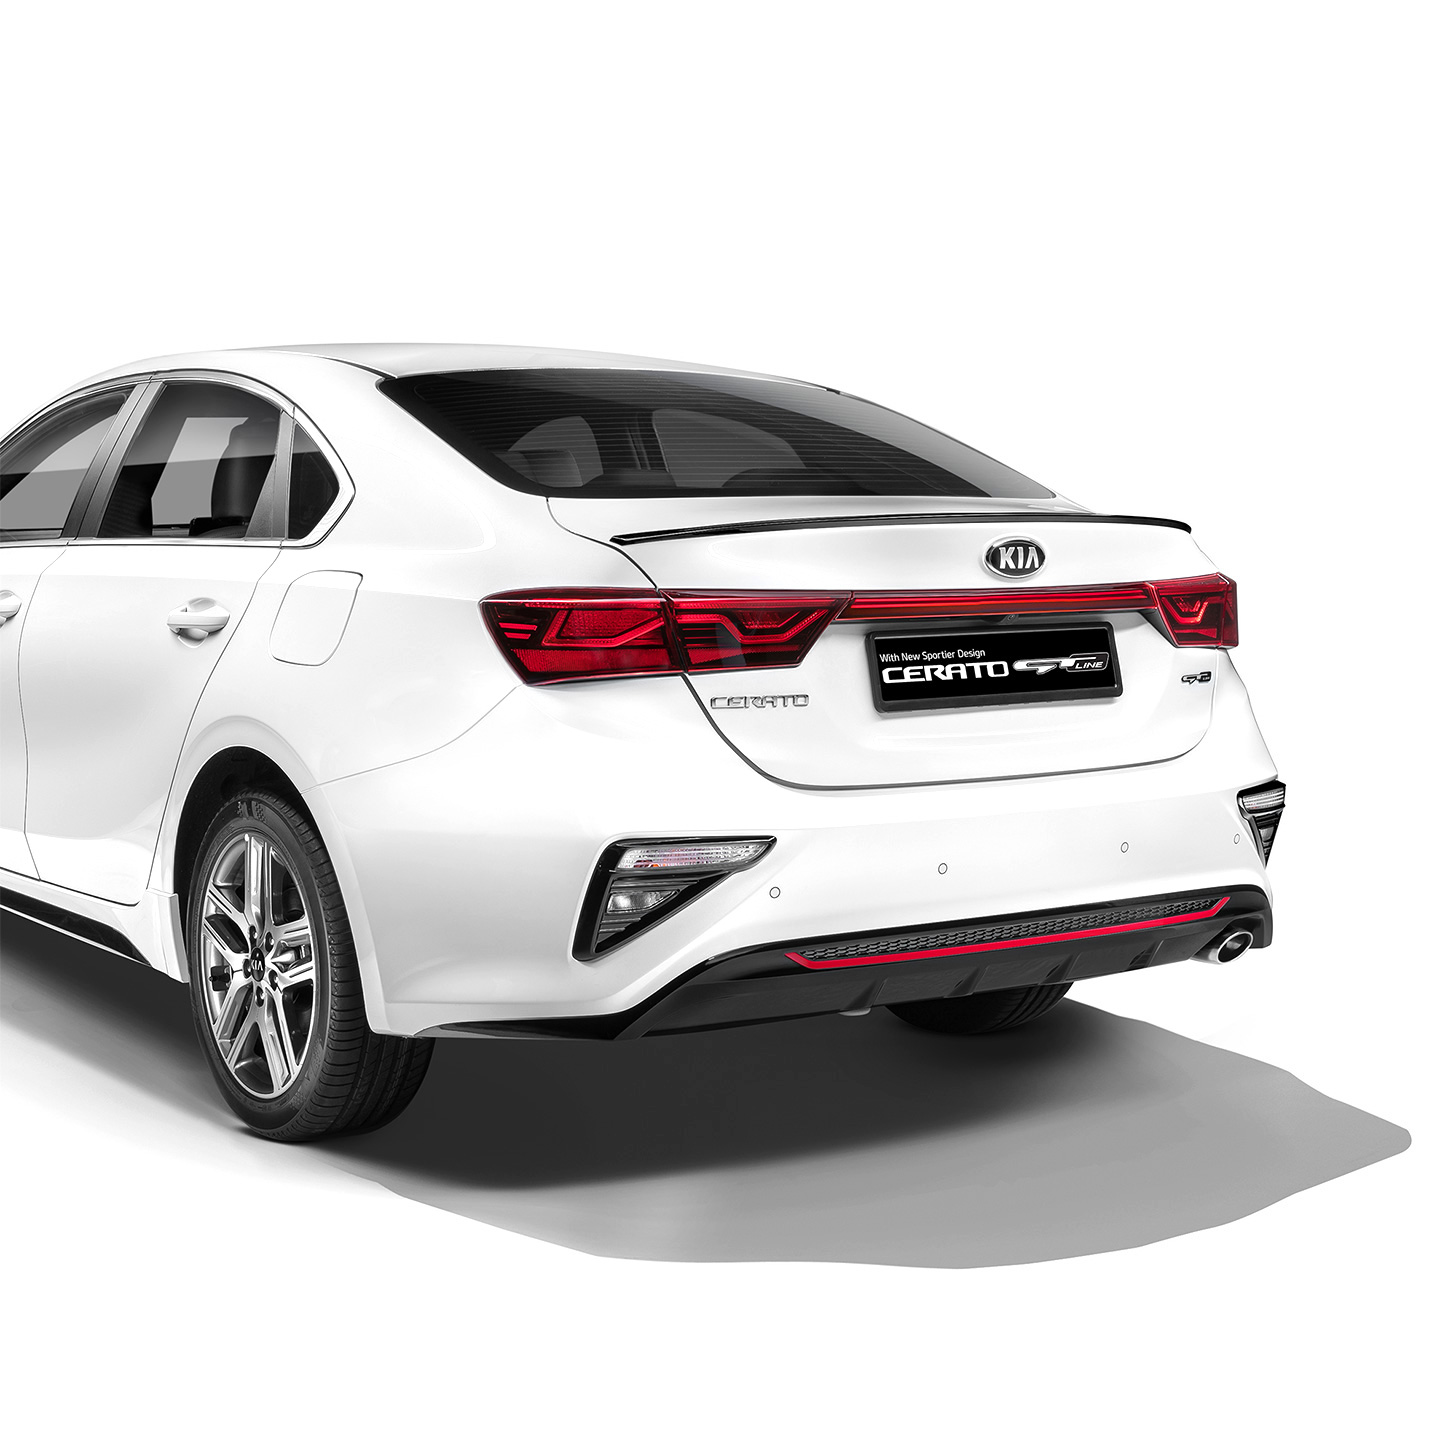 Kia Cerato | Kia Singapore | Cycle & Carriage Singapore